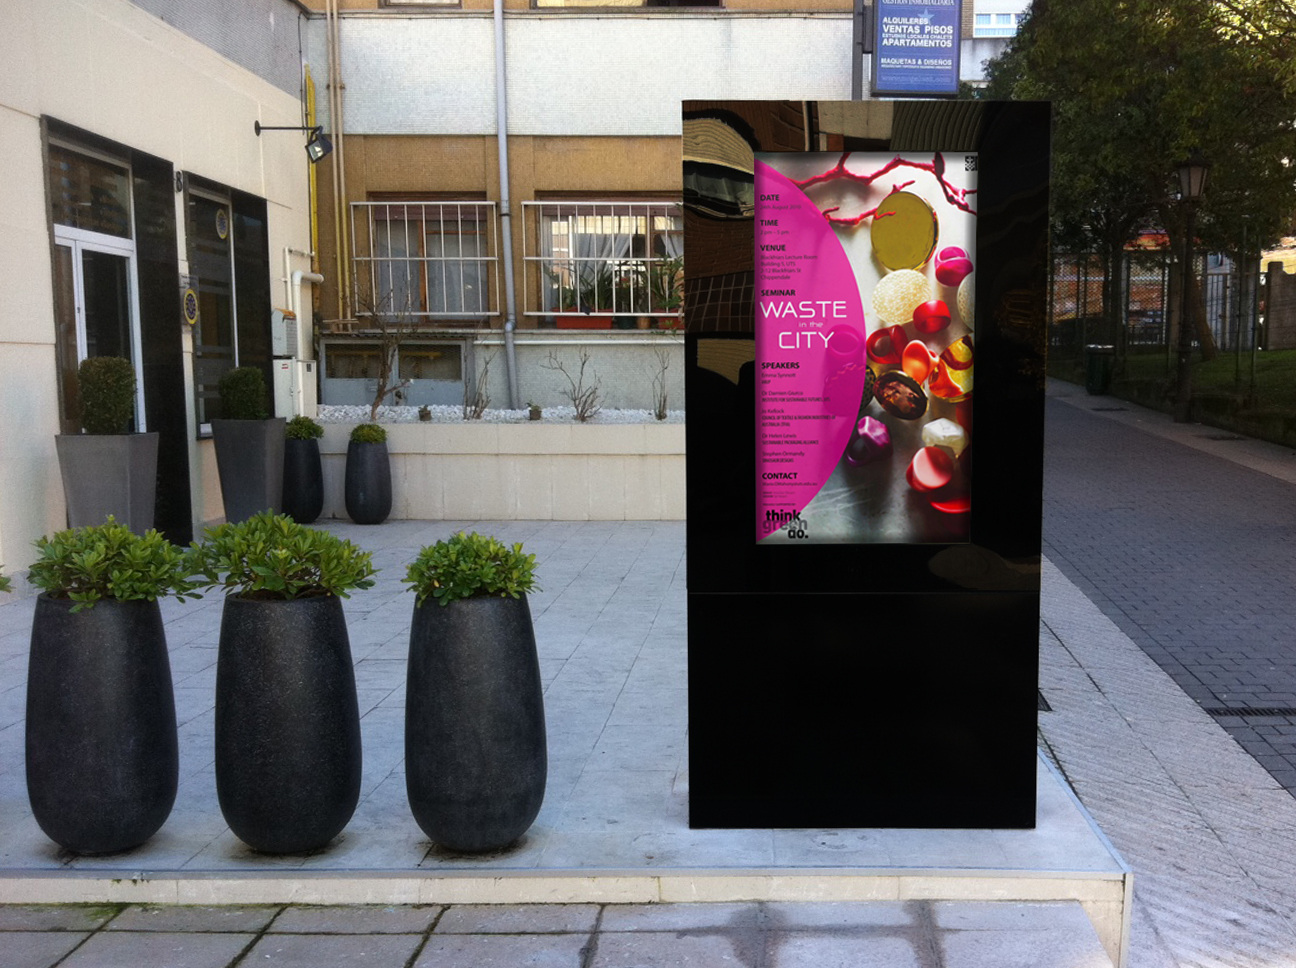 implementing outdoor digital signage